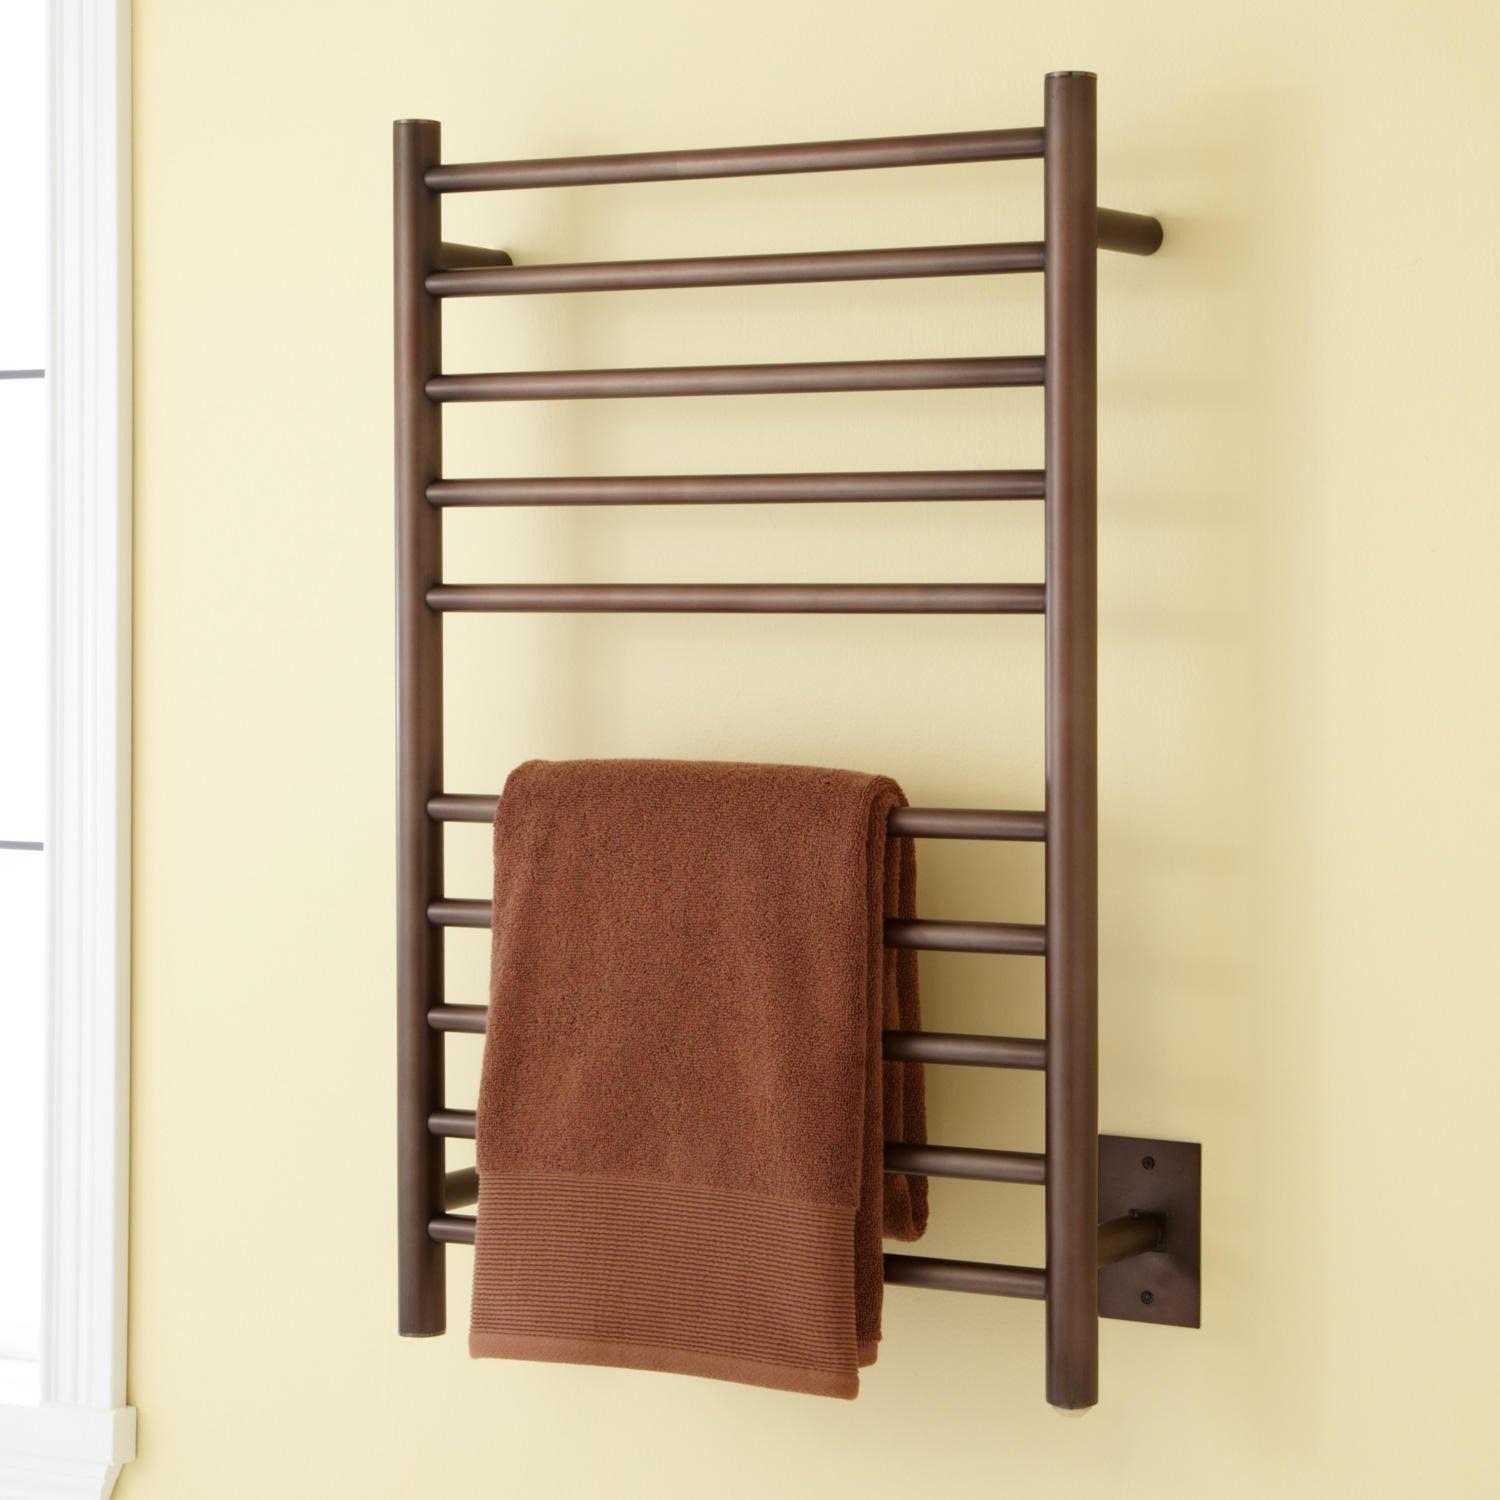 Naiture 20'' Stainless Steel Hardwired Towel Warmer Oil Rubbed Bronze Finish